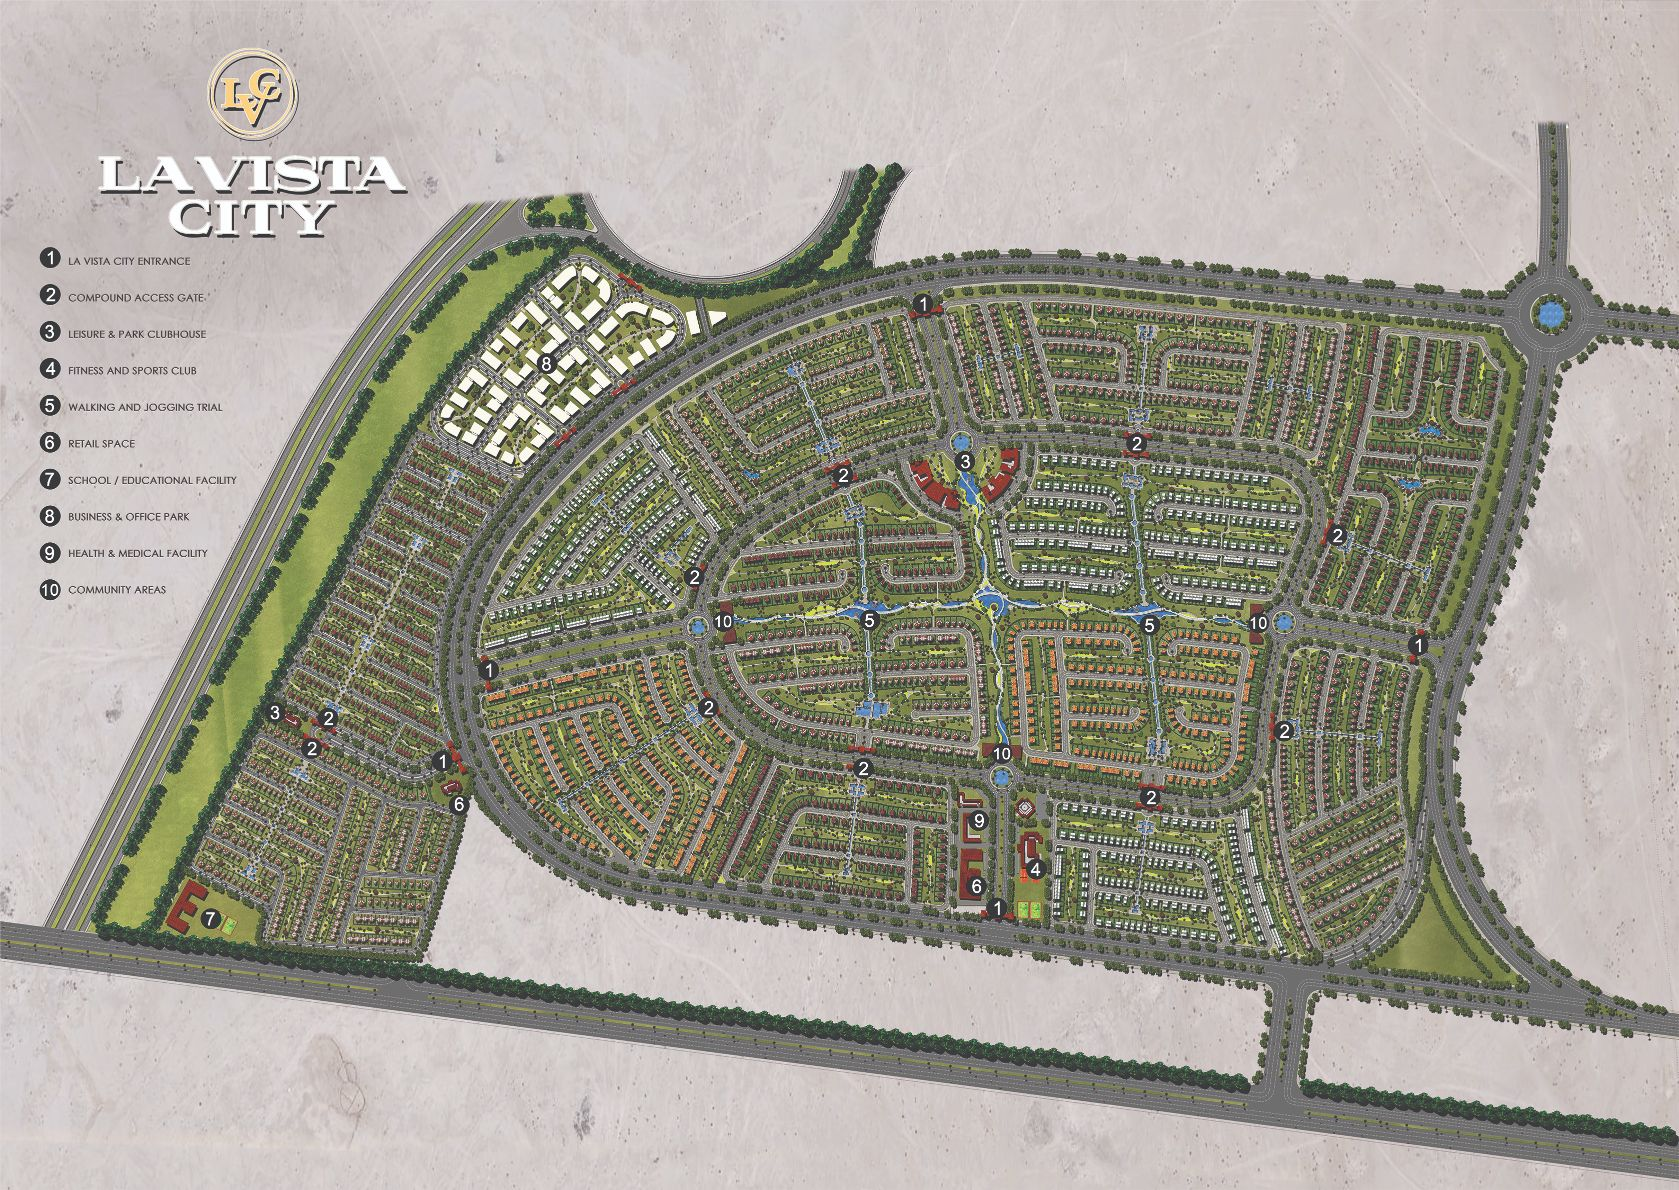 La Vista City Master Plan